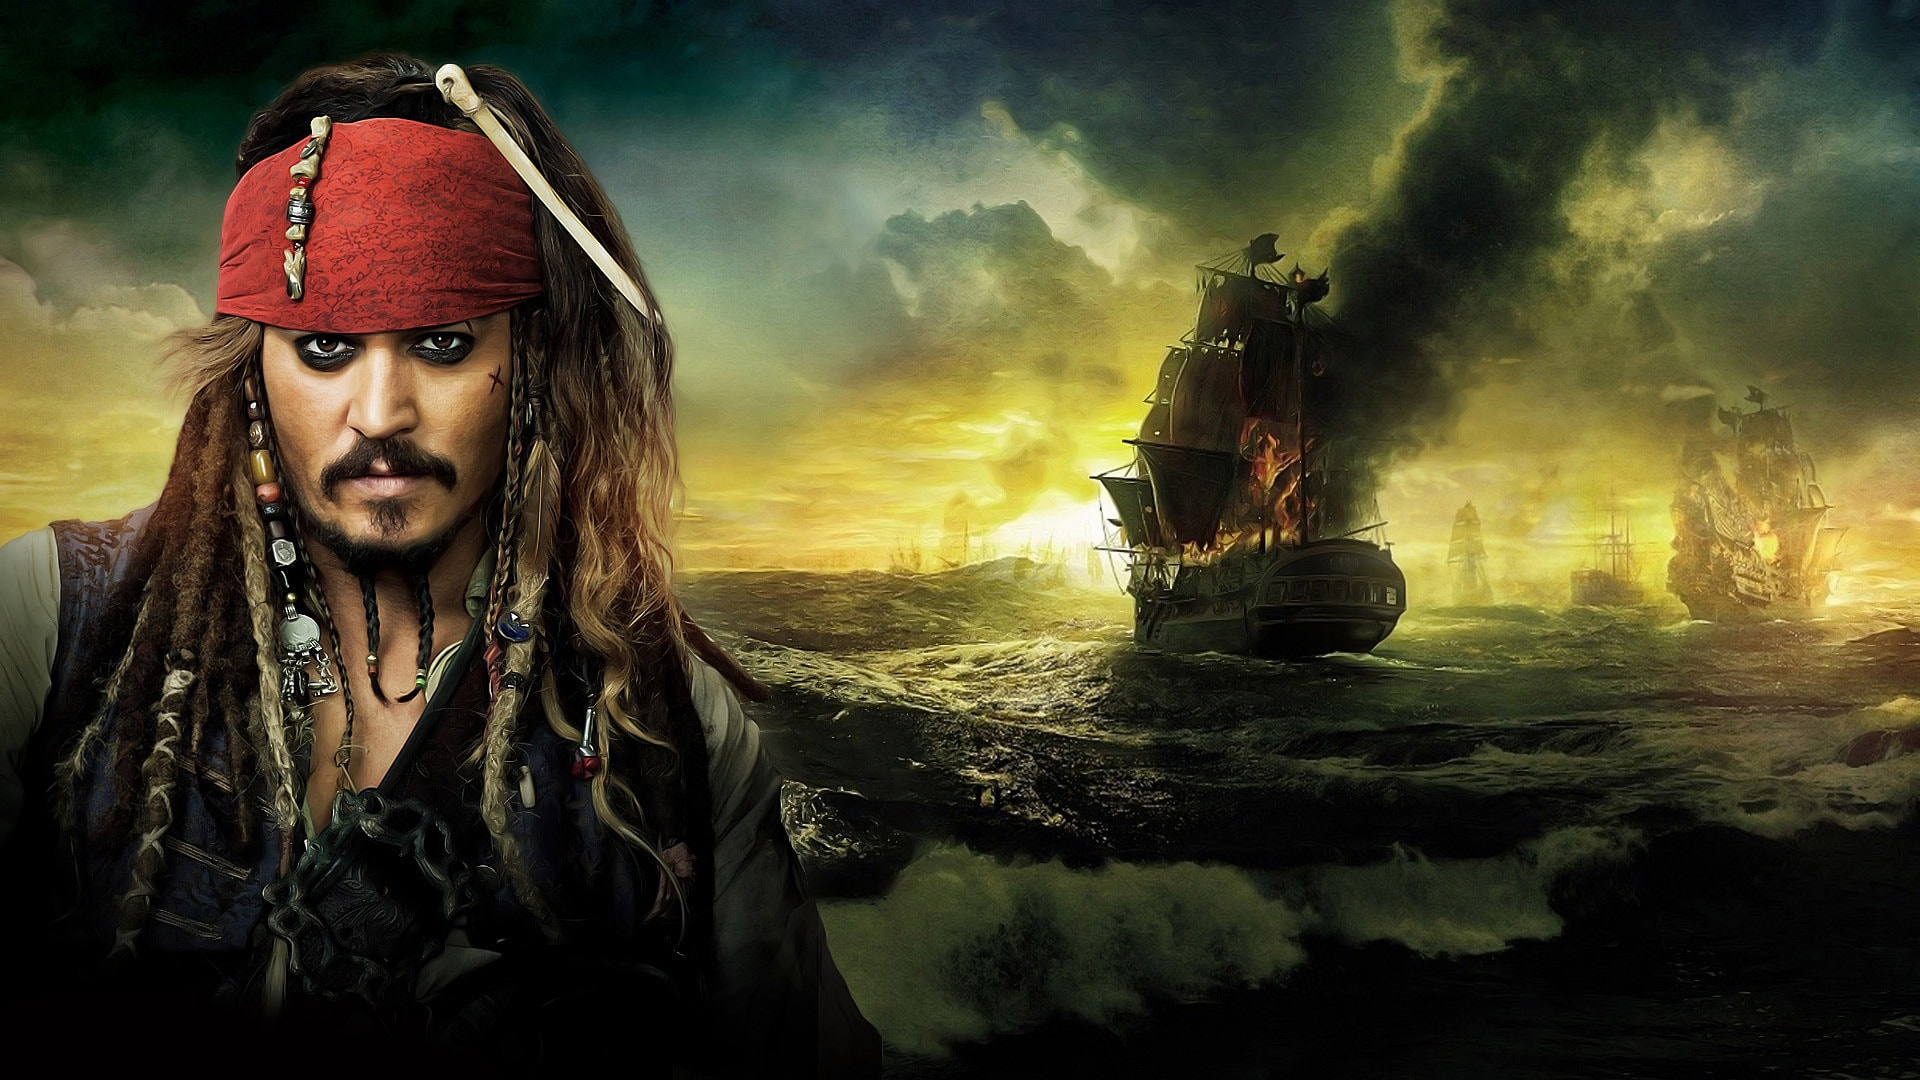 Pirates of the caribbean dead men tell no tales hd desktop pirates of the caribbean dead men tell no tales desktop wallpaper altavistaventures Image collections